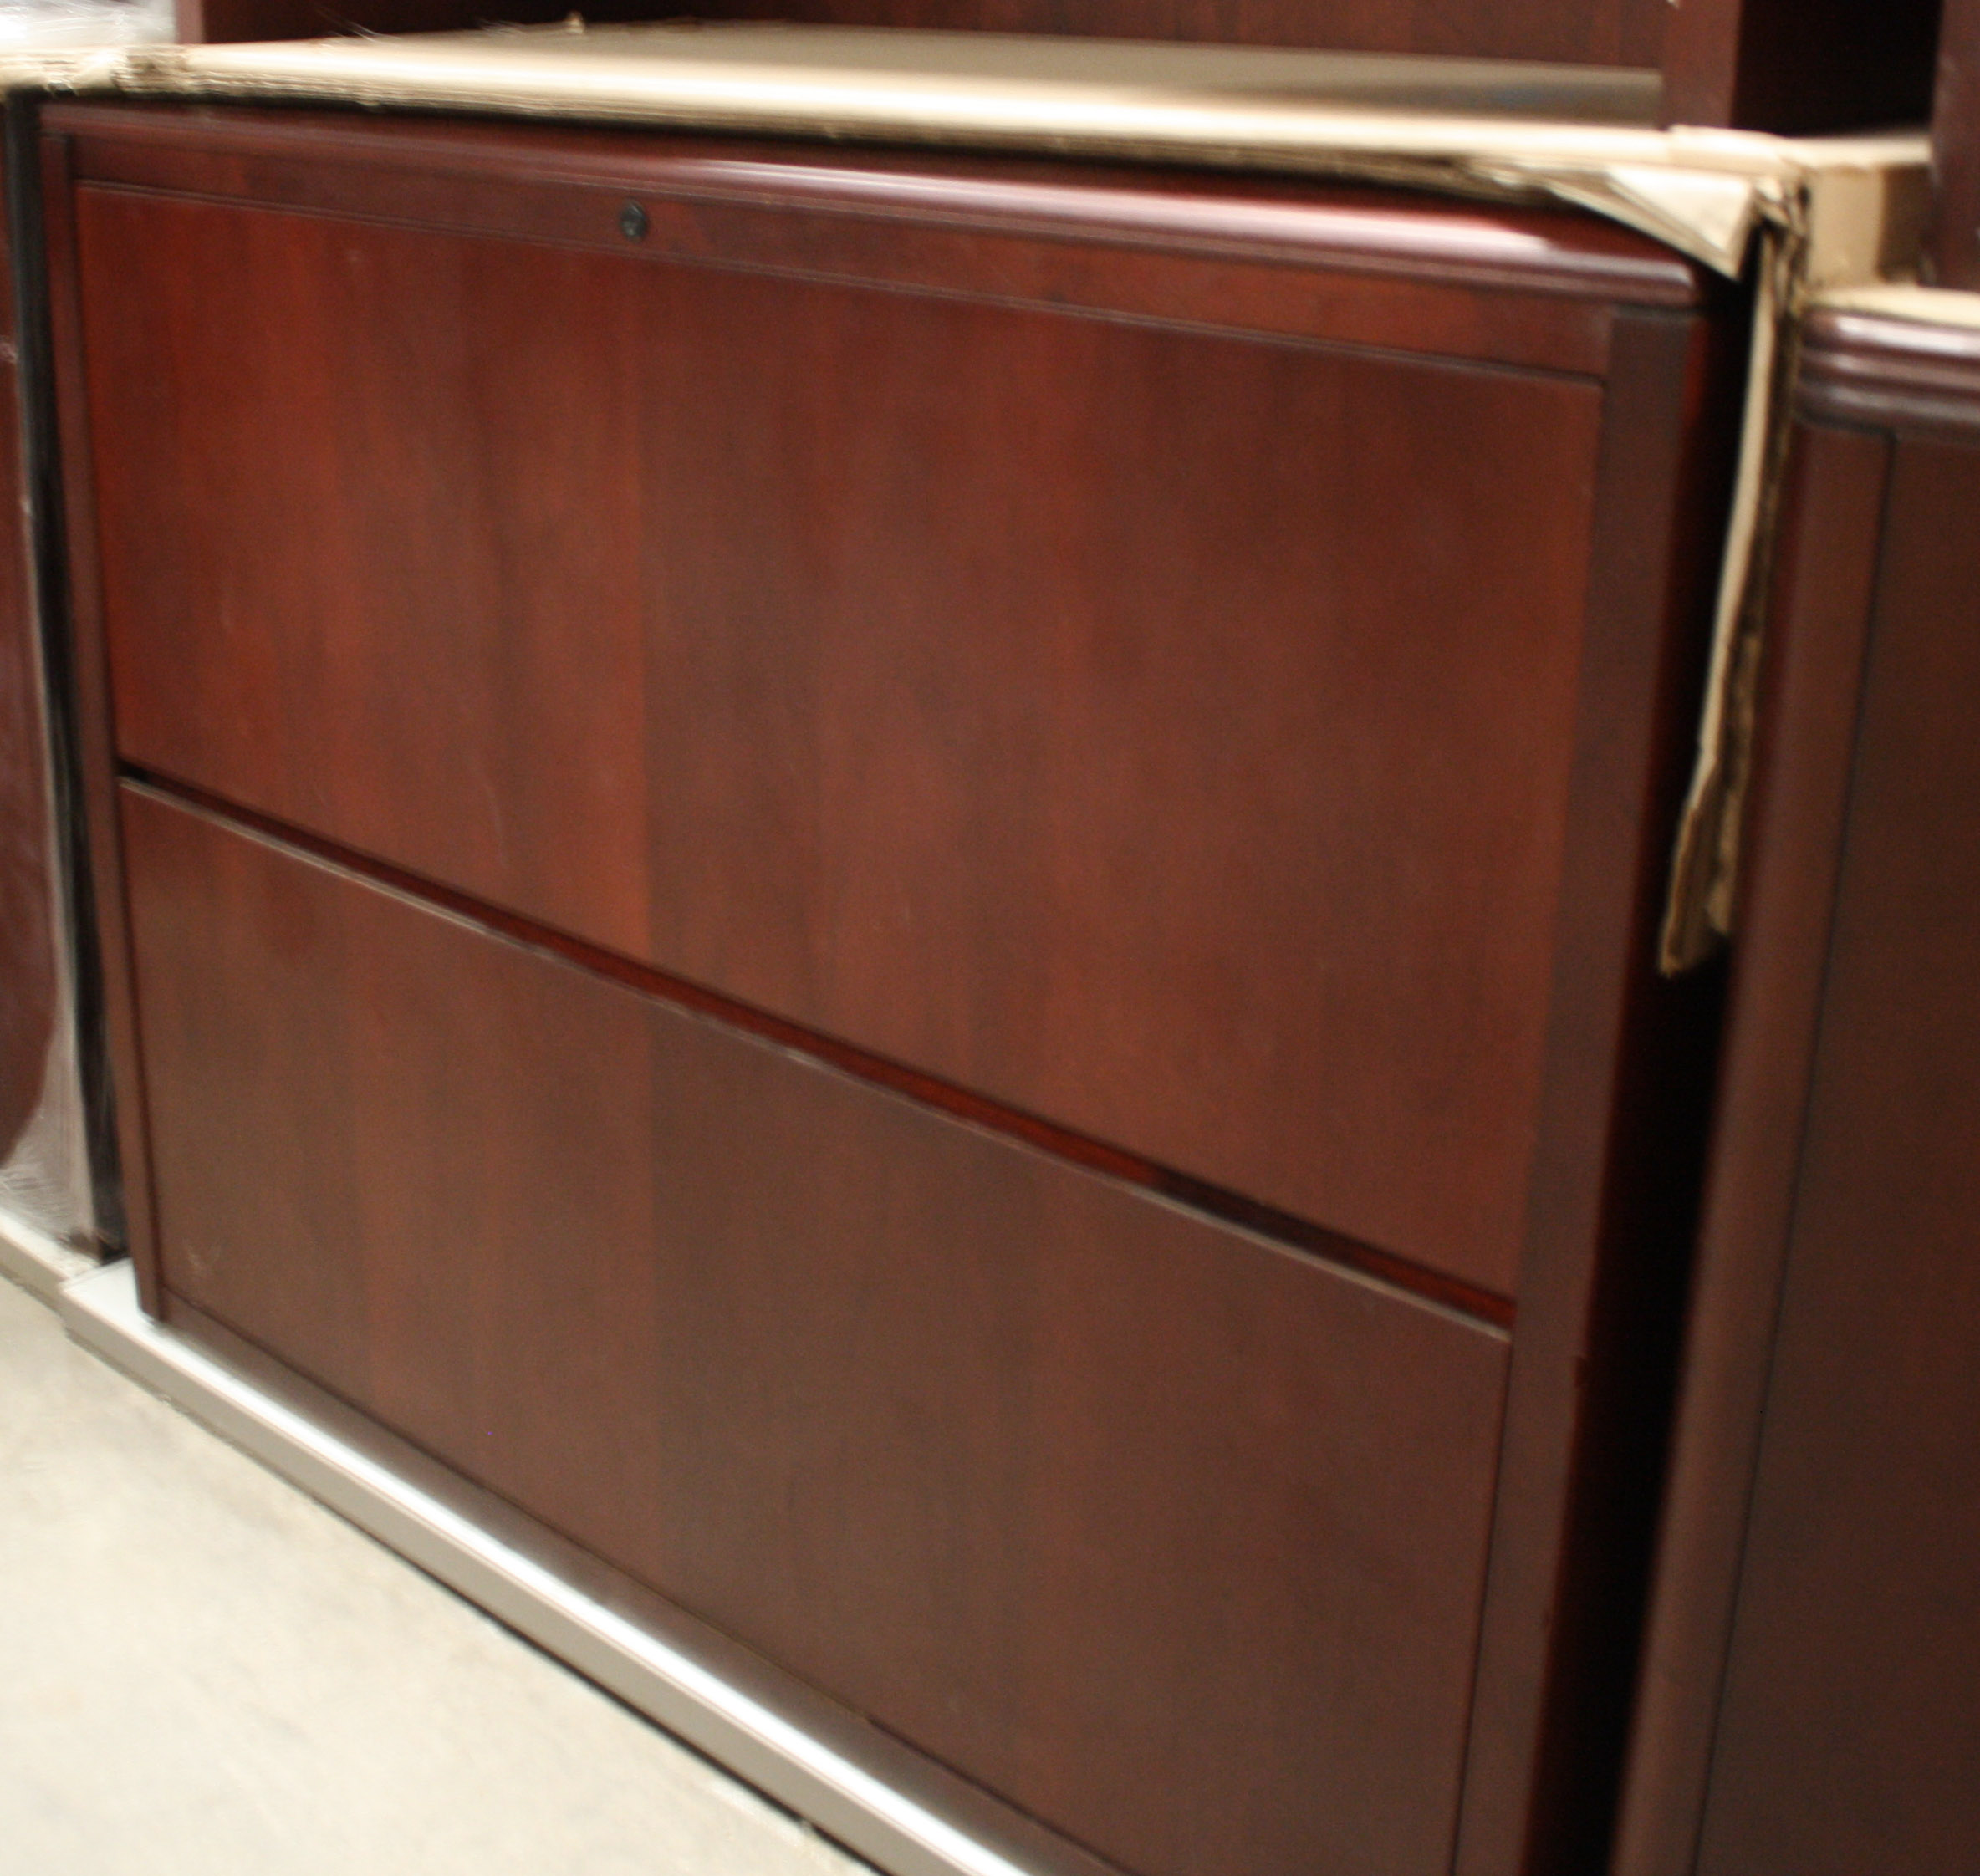 Used Kitchen Cabinets Houston: Savvi Commercial Furniture